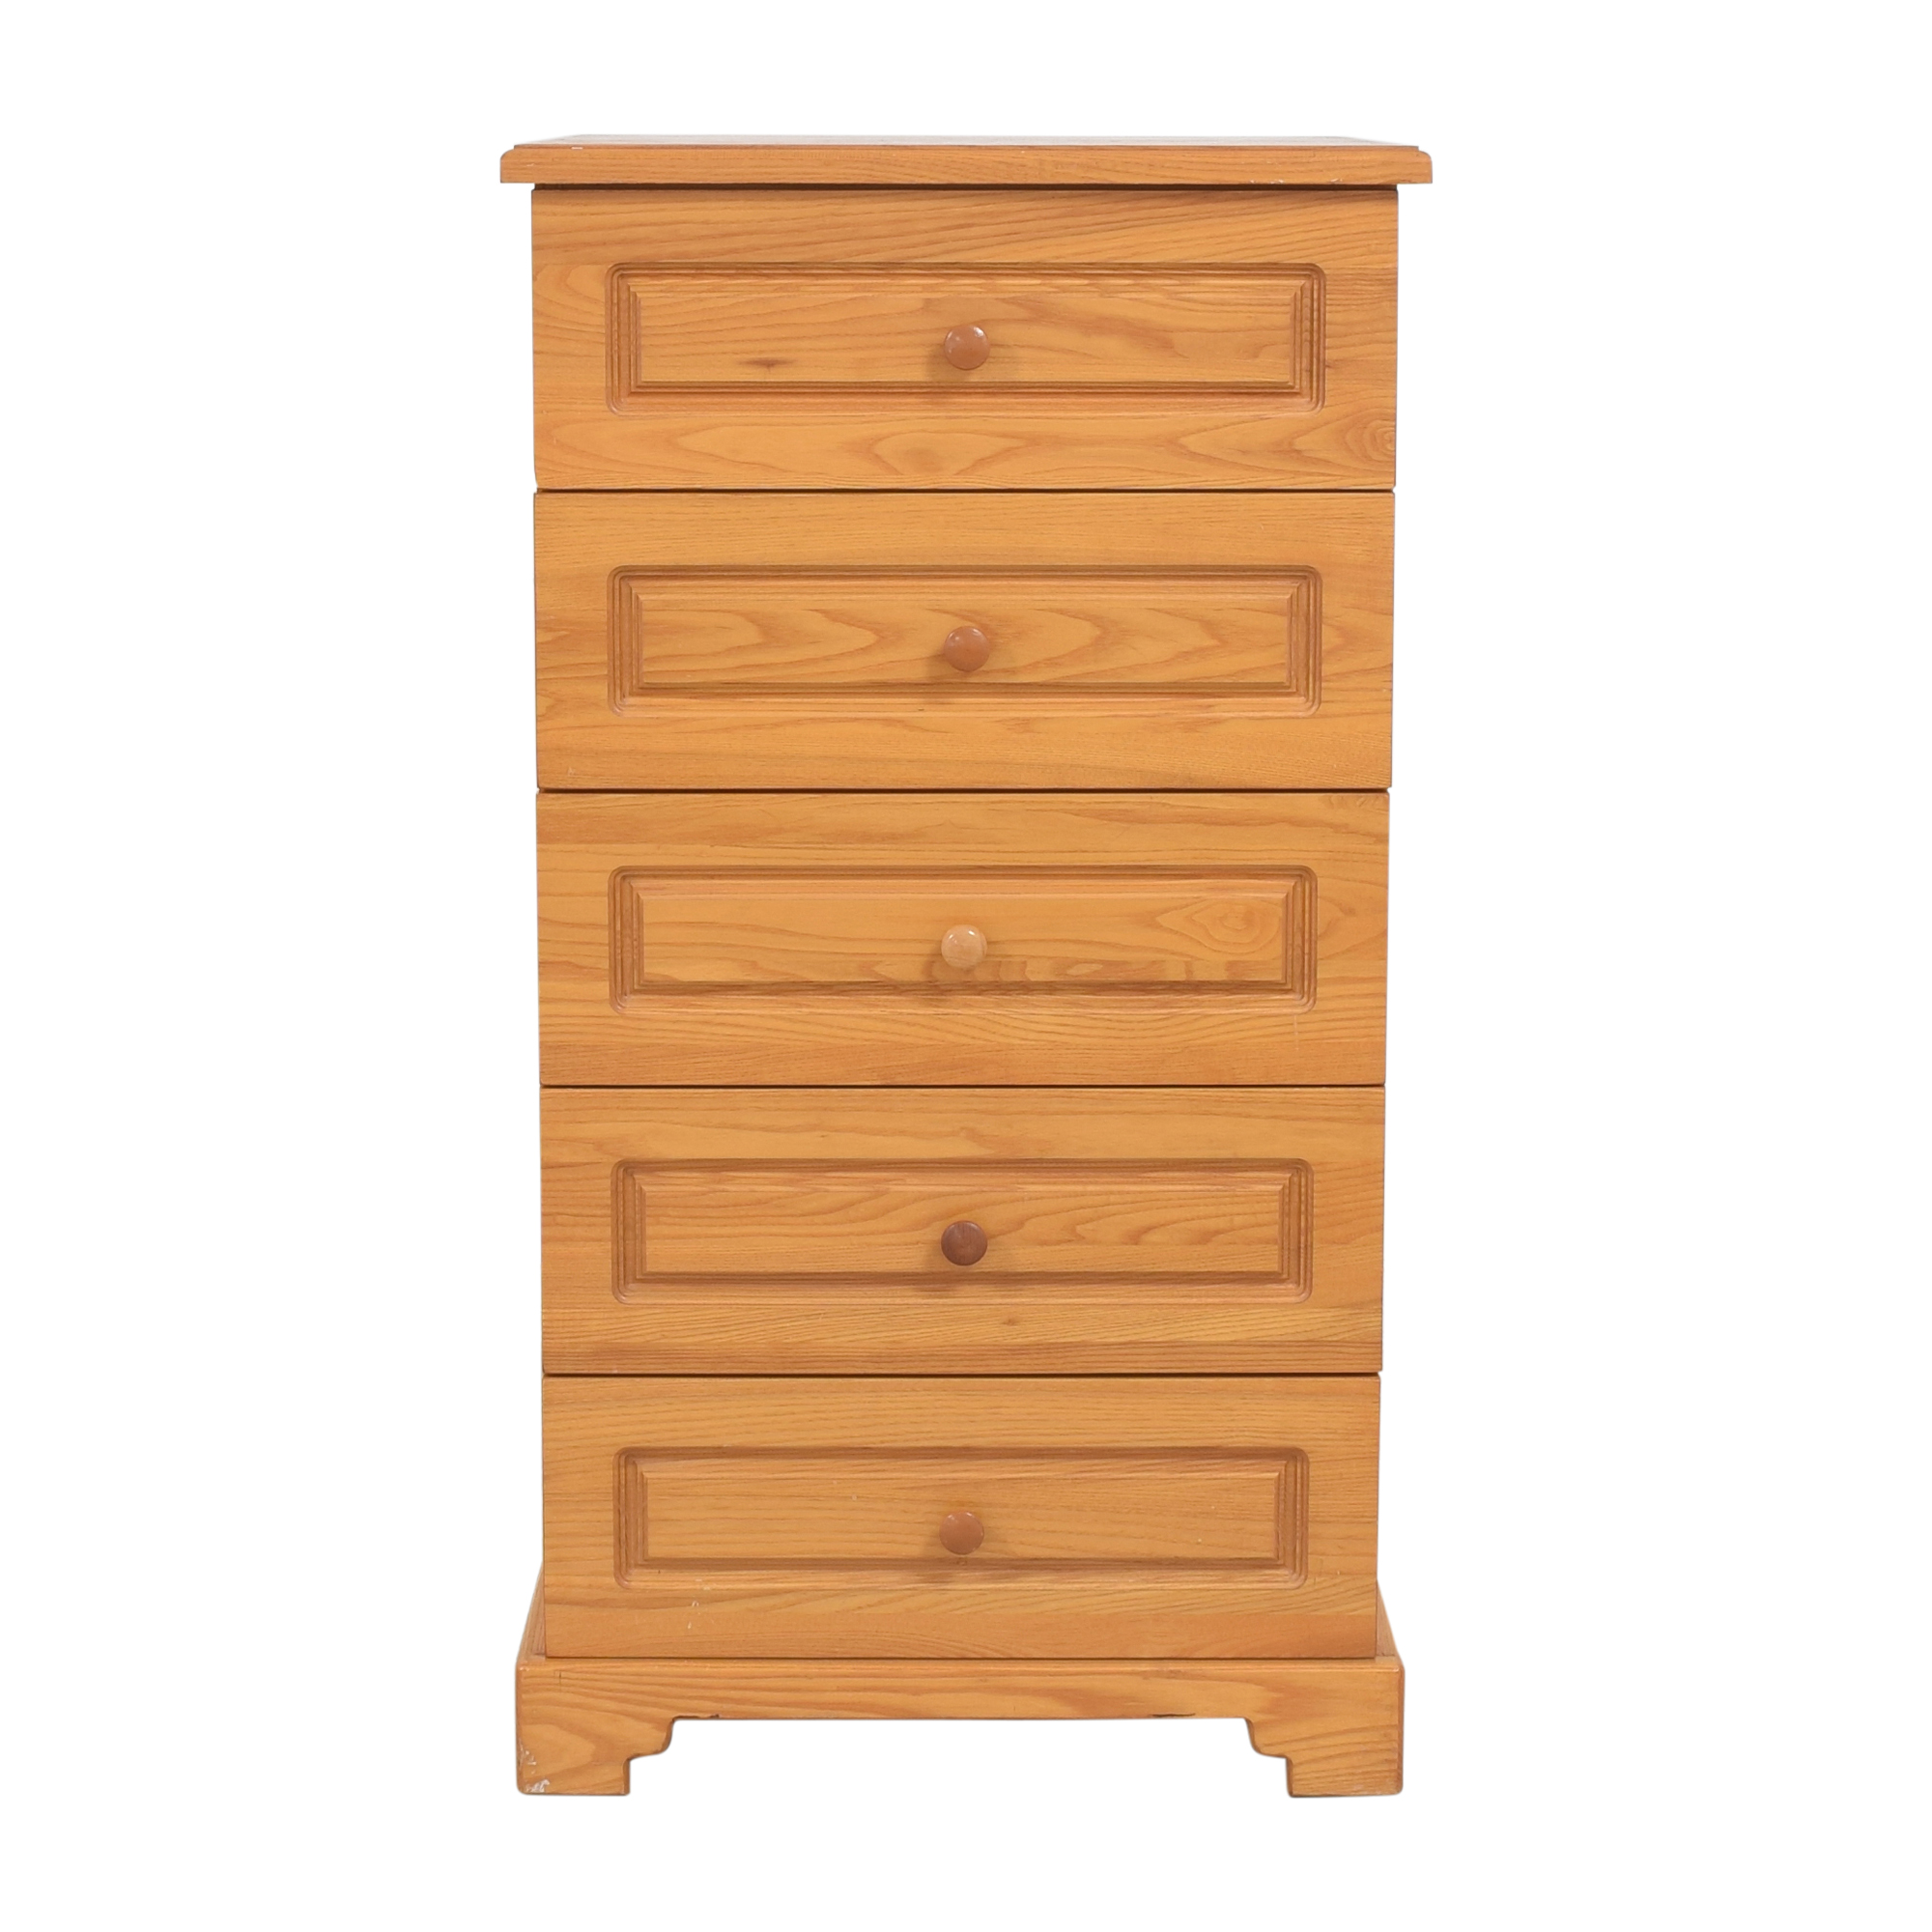 Gothic Cabinet Craft Gothic Cabinet Craft Five Drawer Chest for sale